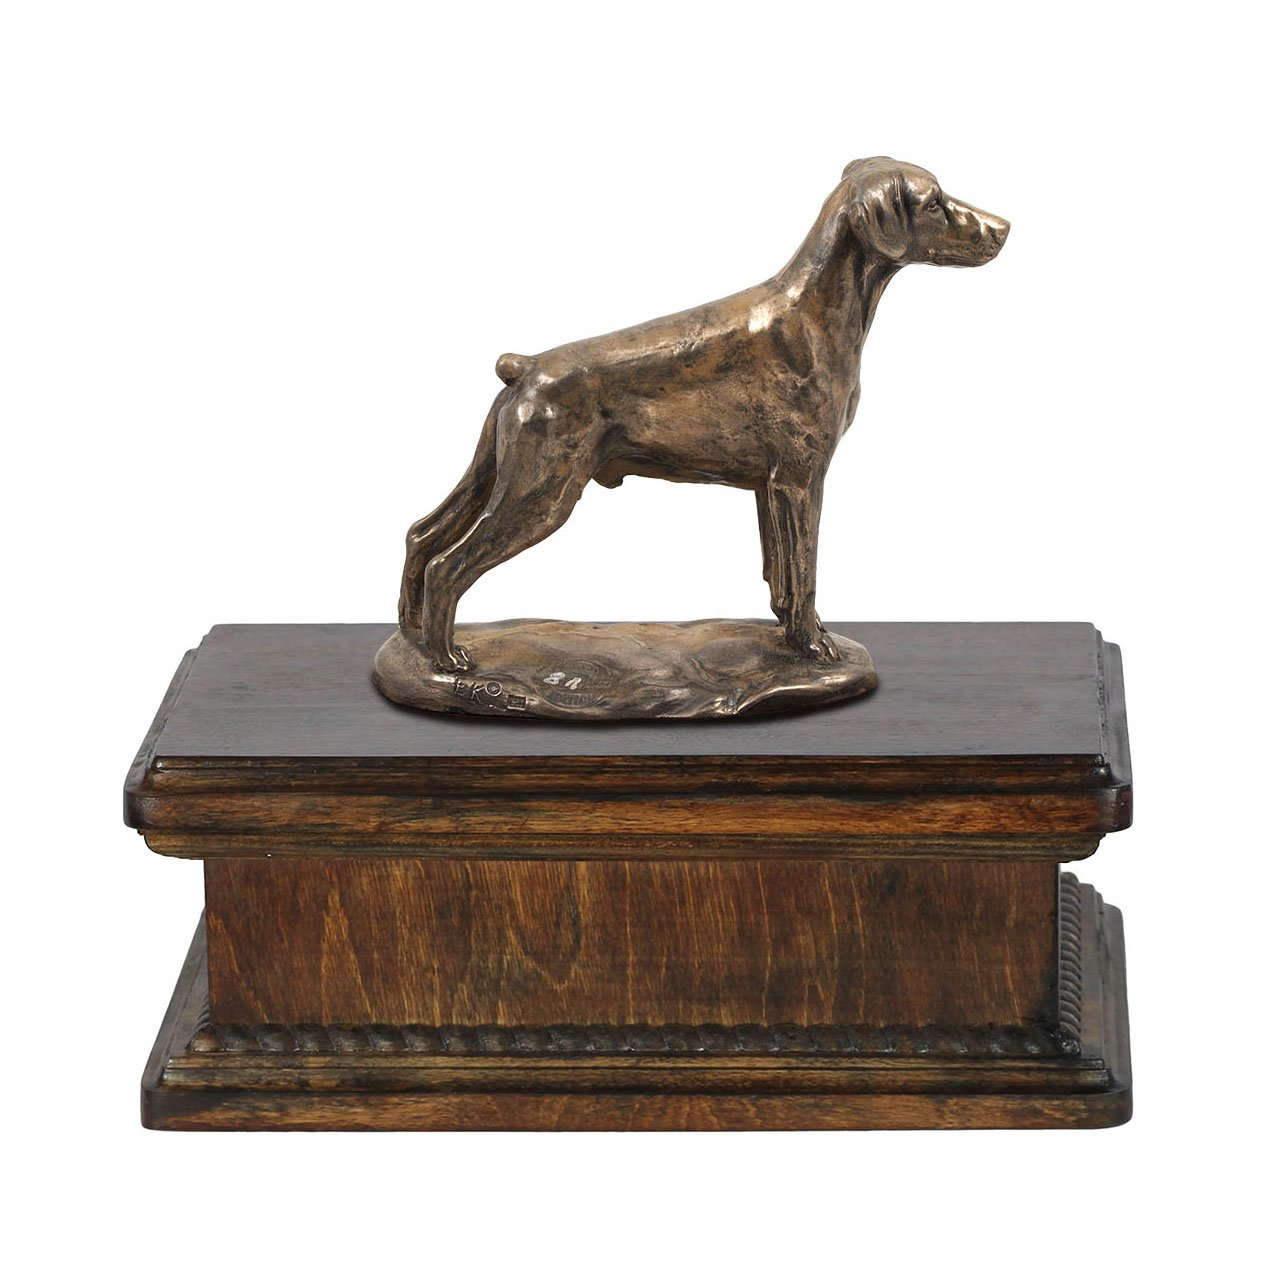 Doberman (uncropped), memorial, urn for dog's ashes, with dog statue, exclusive, ArtDog